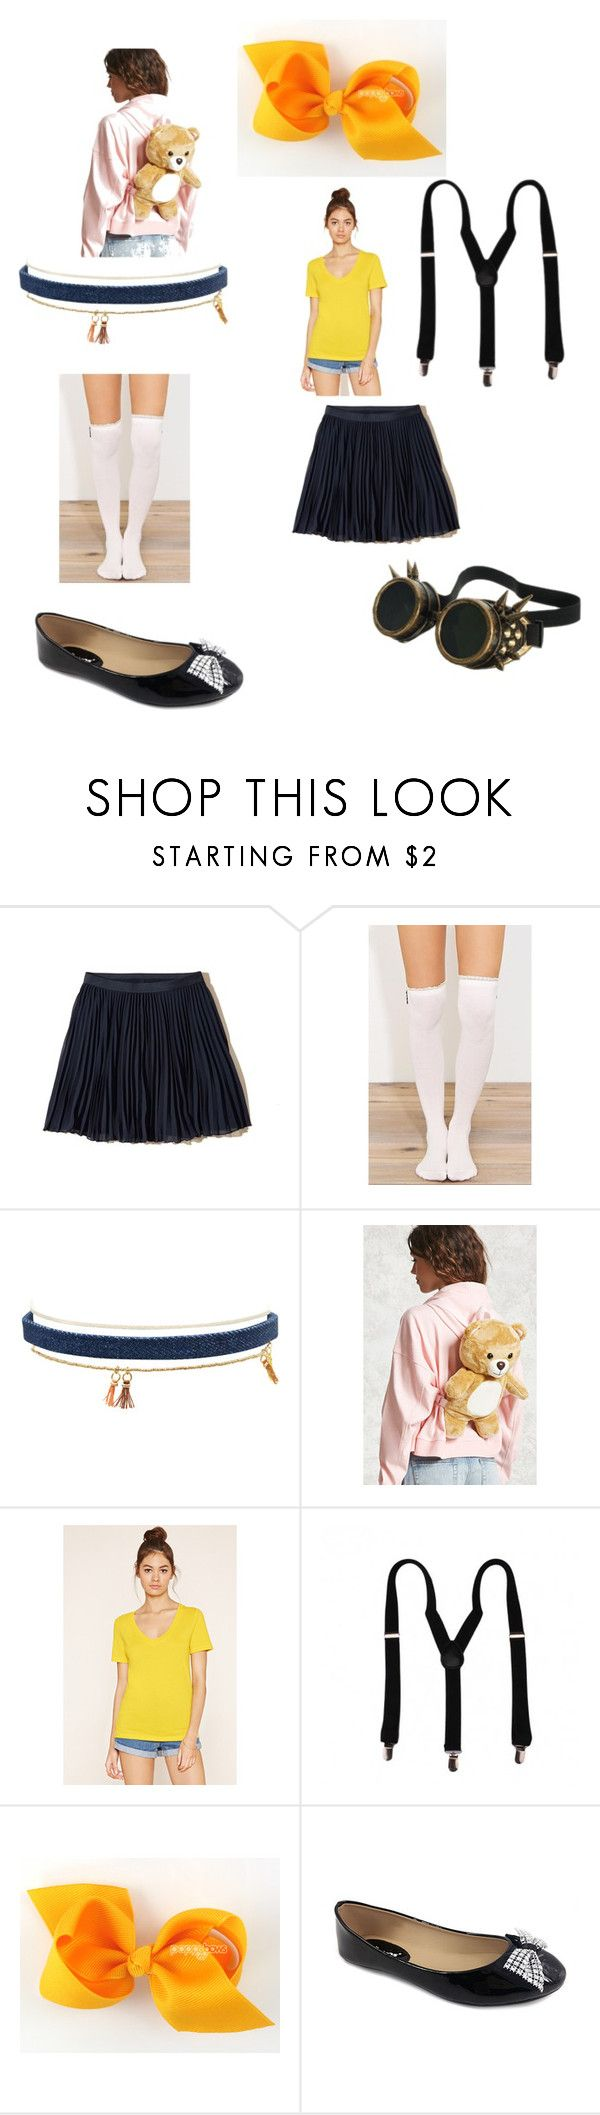 """""""Minions outfit!(3)"""" by hailie-jolley on Polyvore featuring Hollister Co., Forever 21 and Ositos Shoes"""